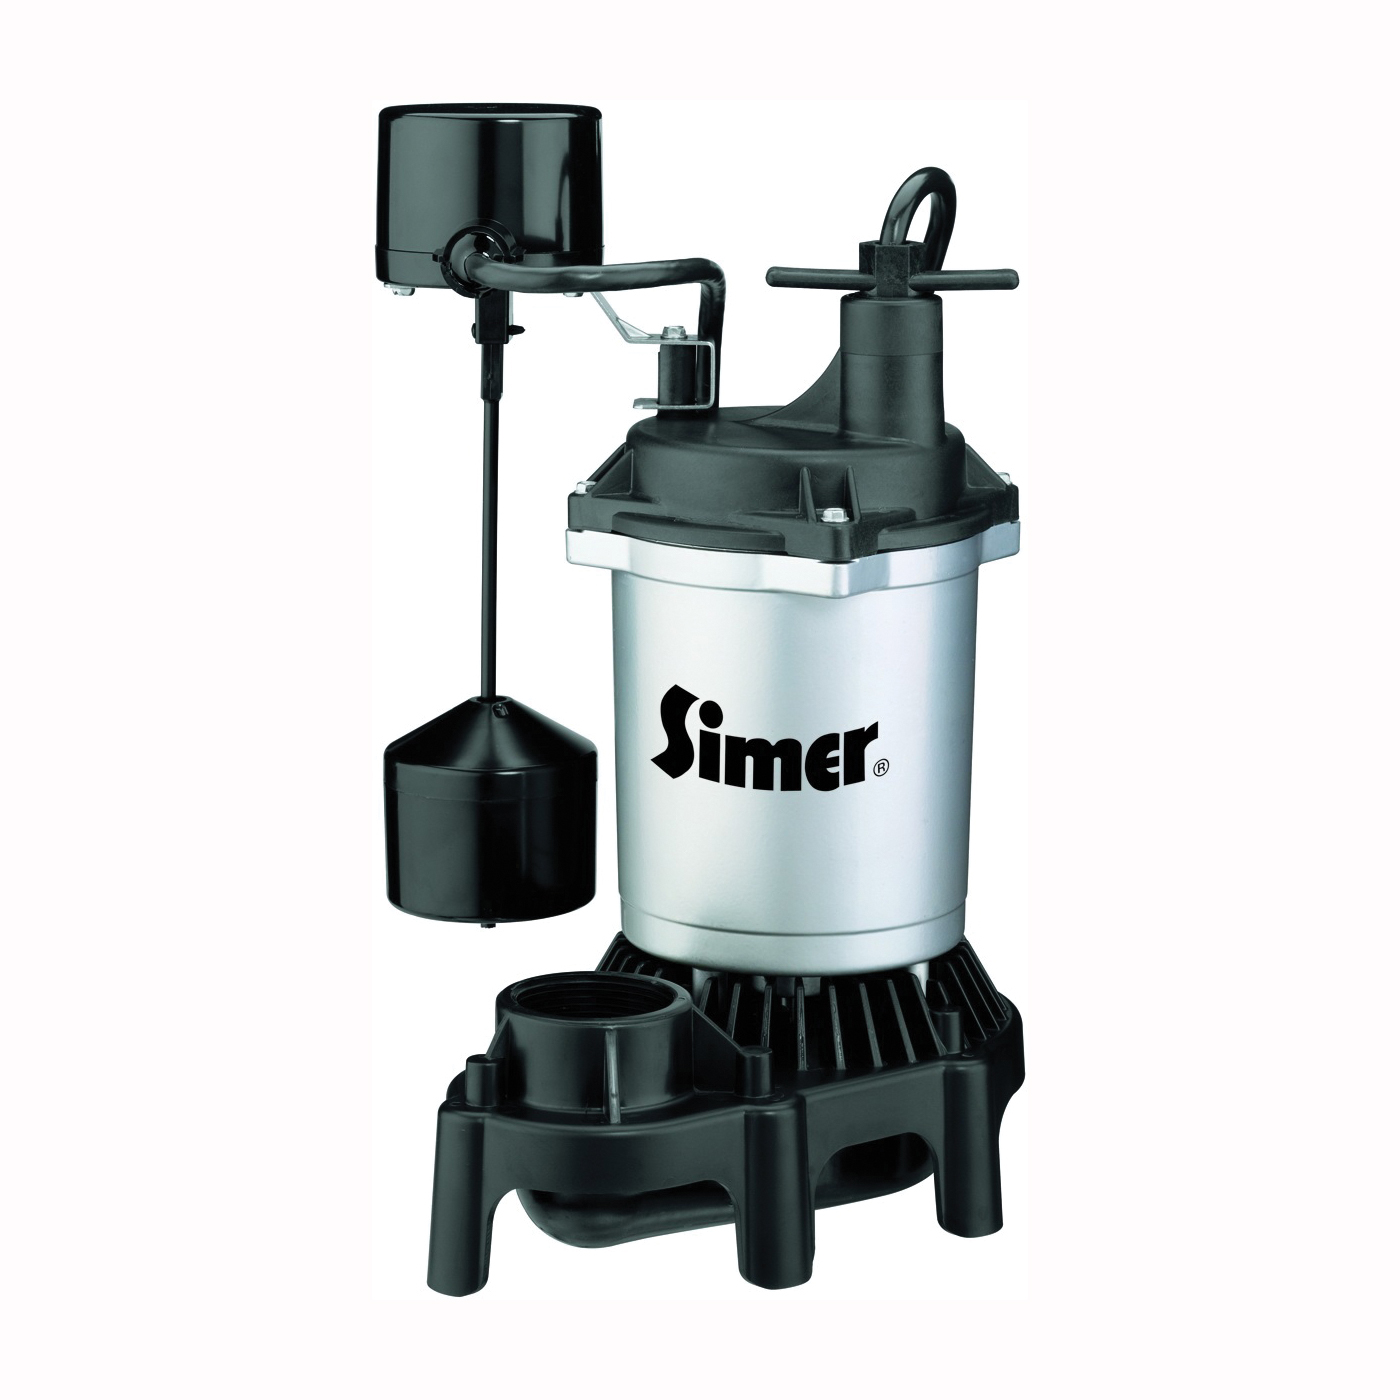 Picture of Sta-Rite Simer 2164 Sump Pump, 1-Phase, 3.9 A, 115 V, 0.33 hp, 1-1/2 in Outlet, 22 ft Max Head, 660 gph